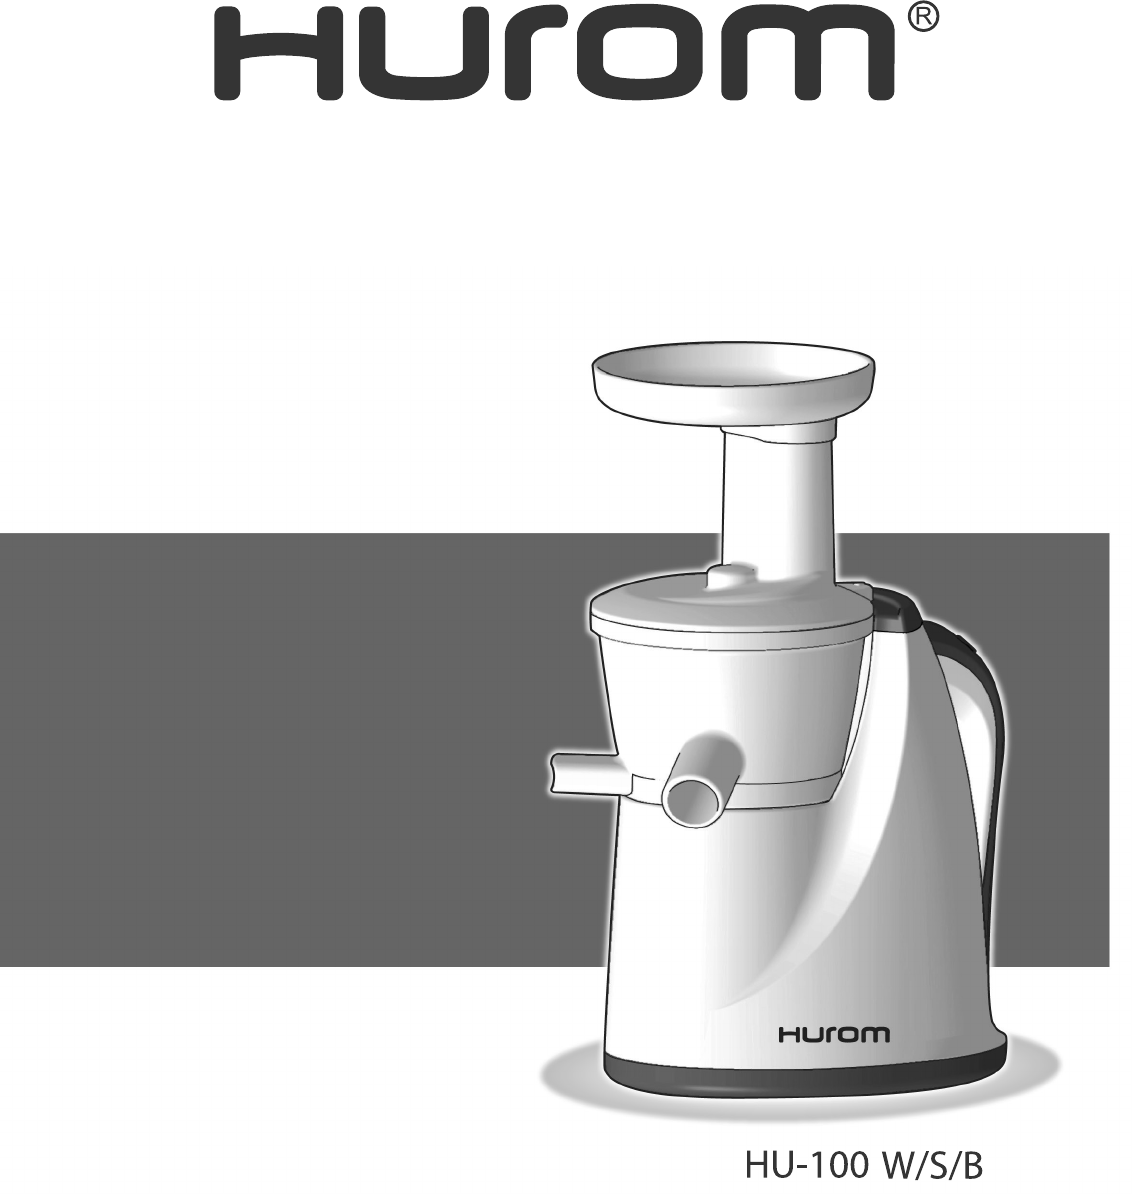 Hurom Slow Juicer Instructions : Handleiding Hurom Hurom Slow juicer HU-100 S (pagina 1 van 44) (English, Espan?l, Francais)